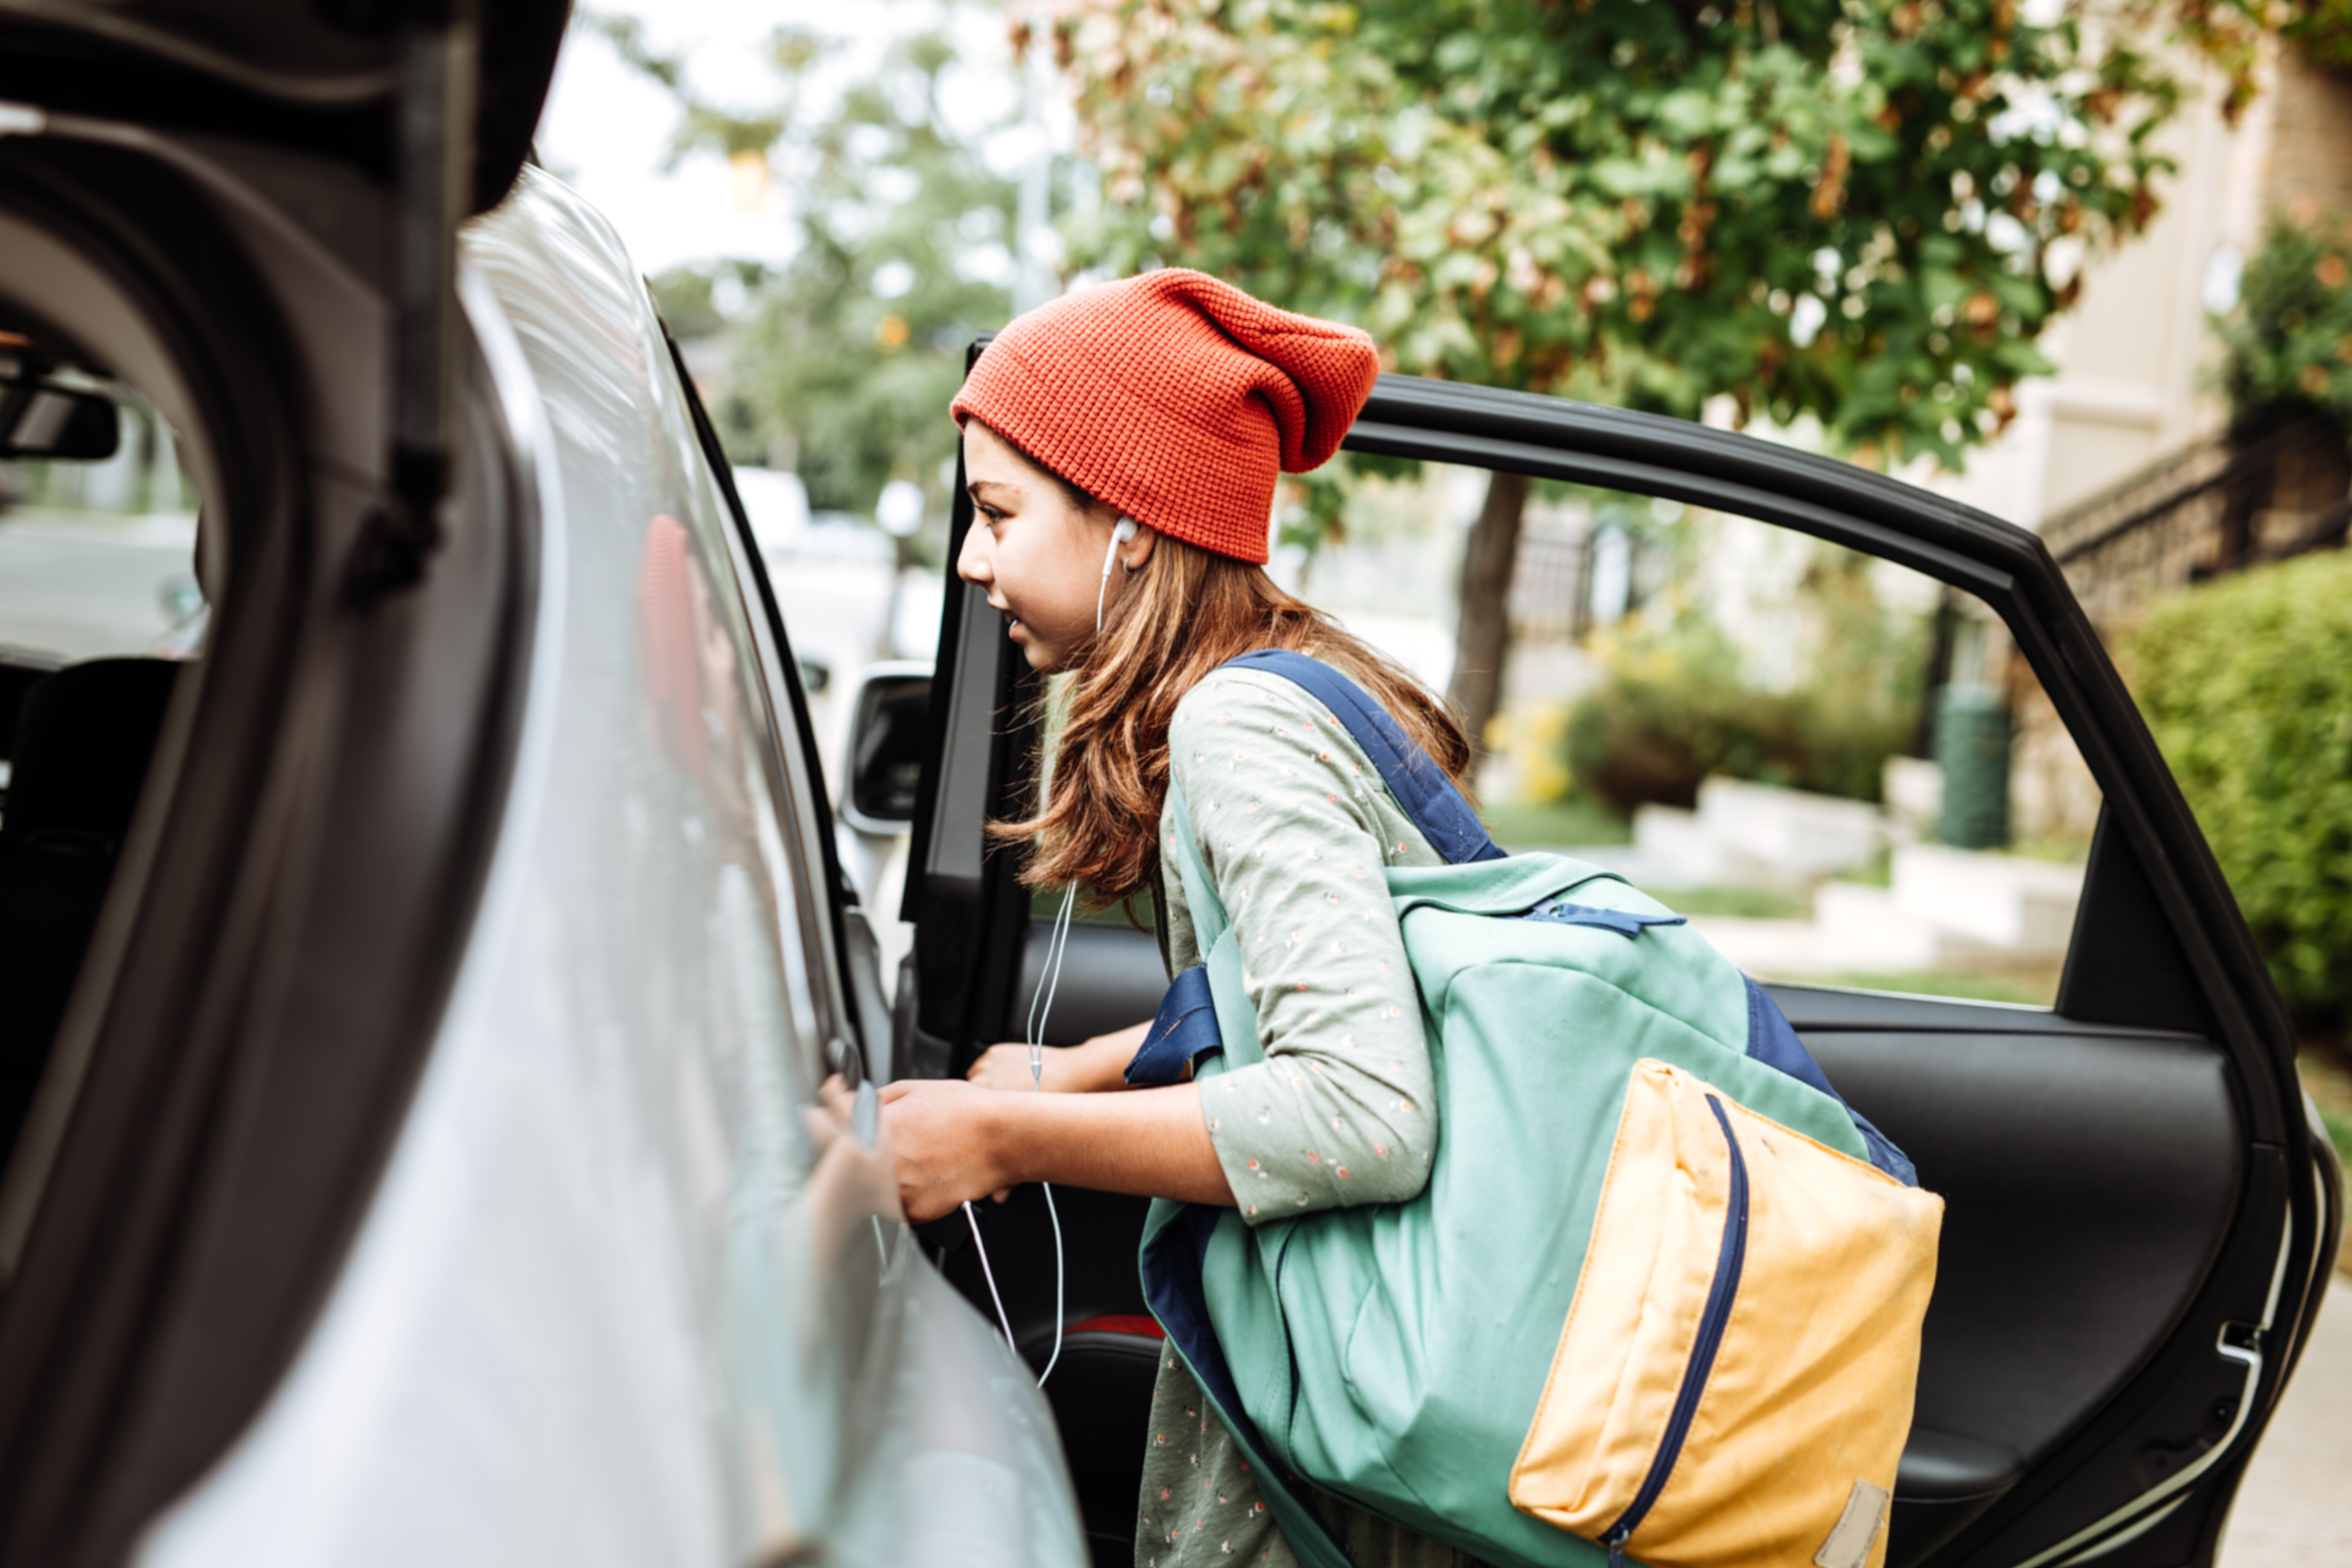 Girl getting in car to go to school